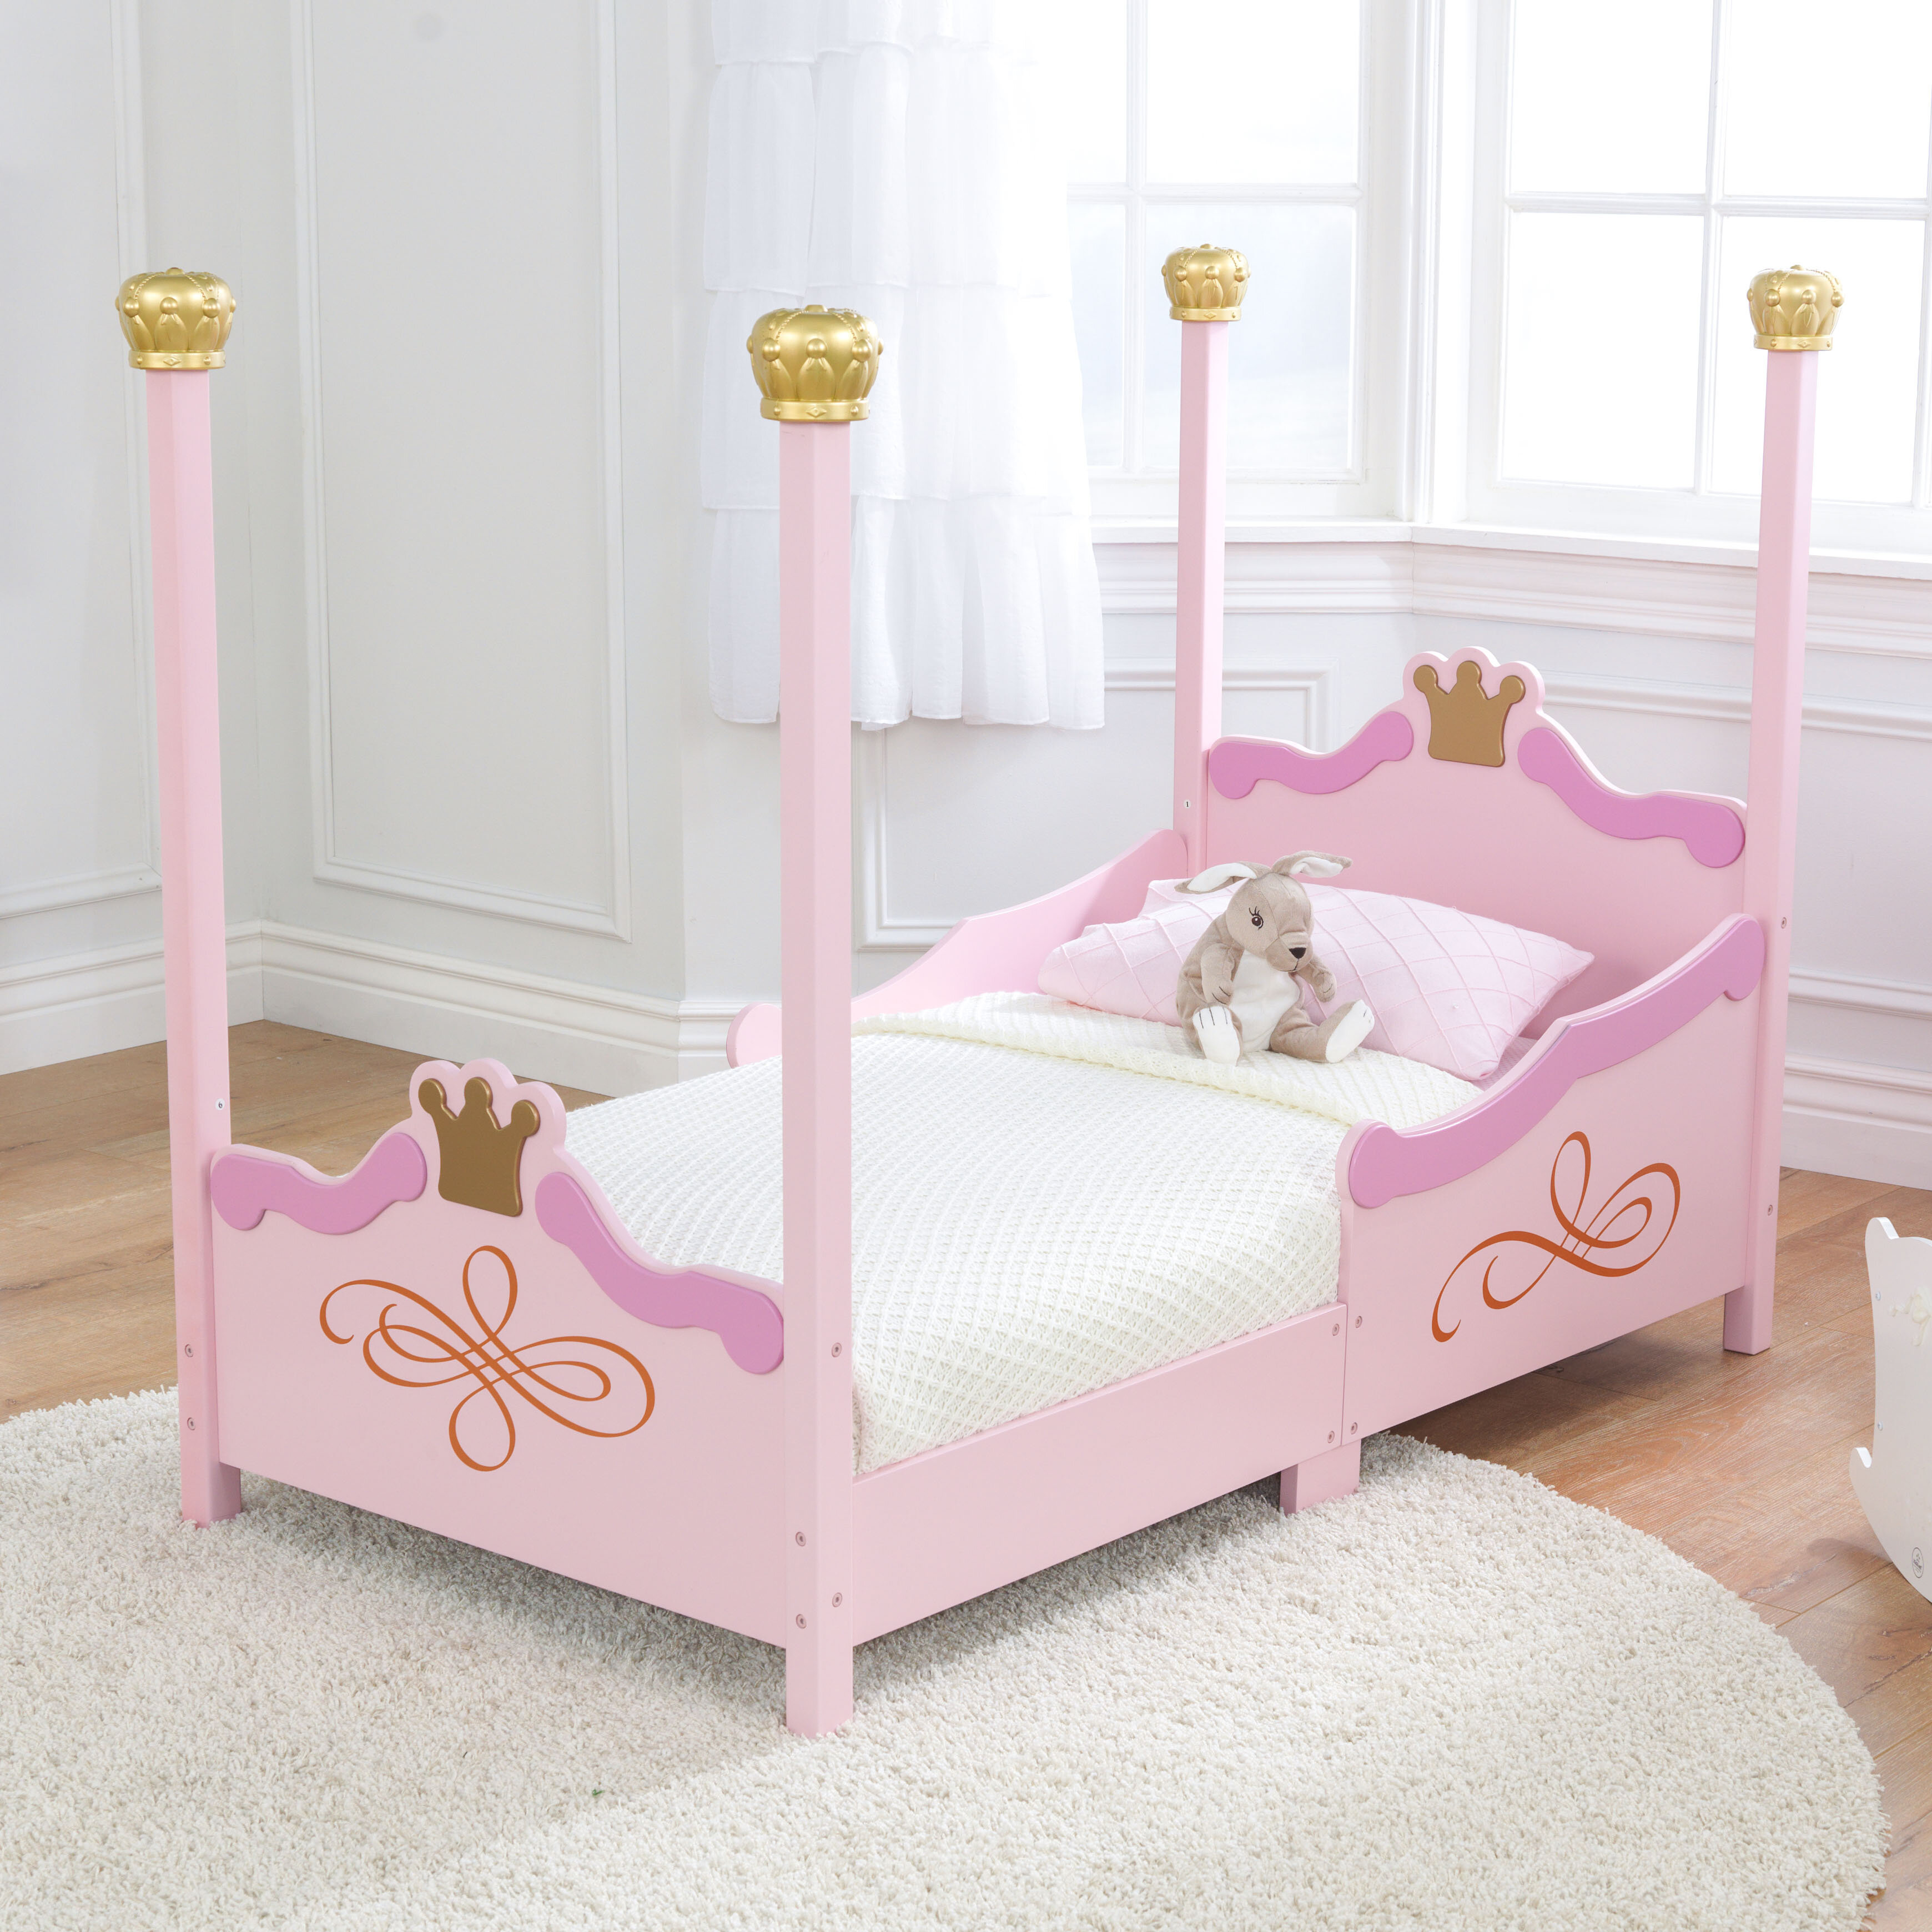 Picture of: Kidkraft Princess Toddler Four Poster Bed Reviews